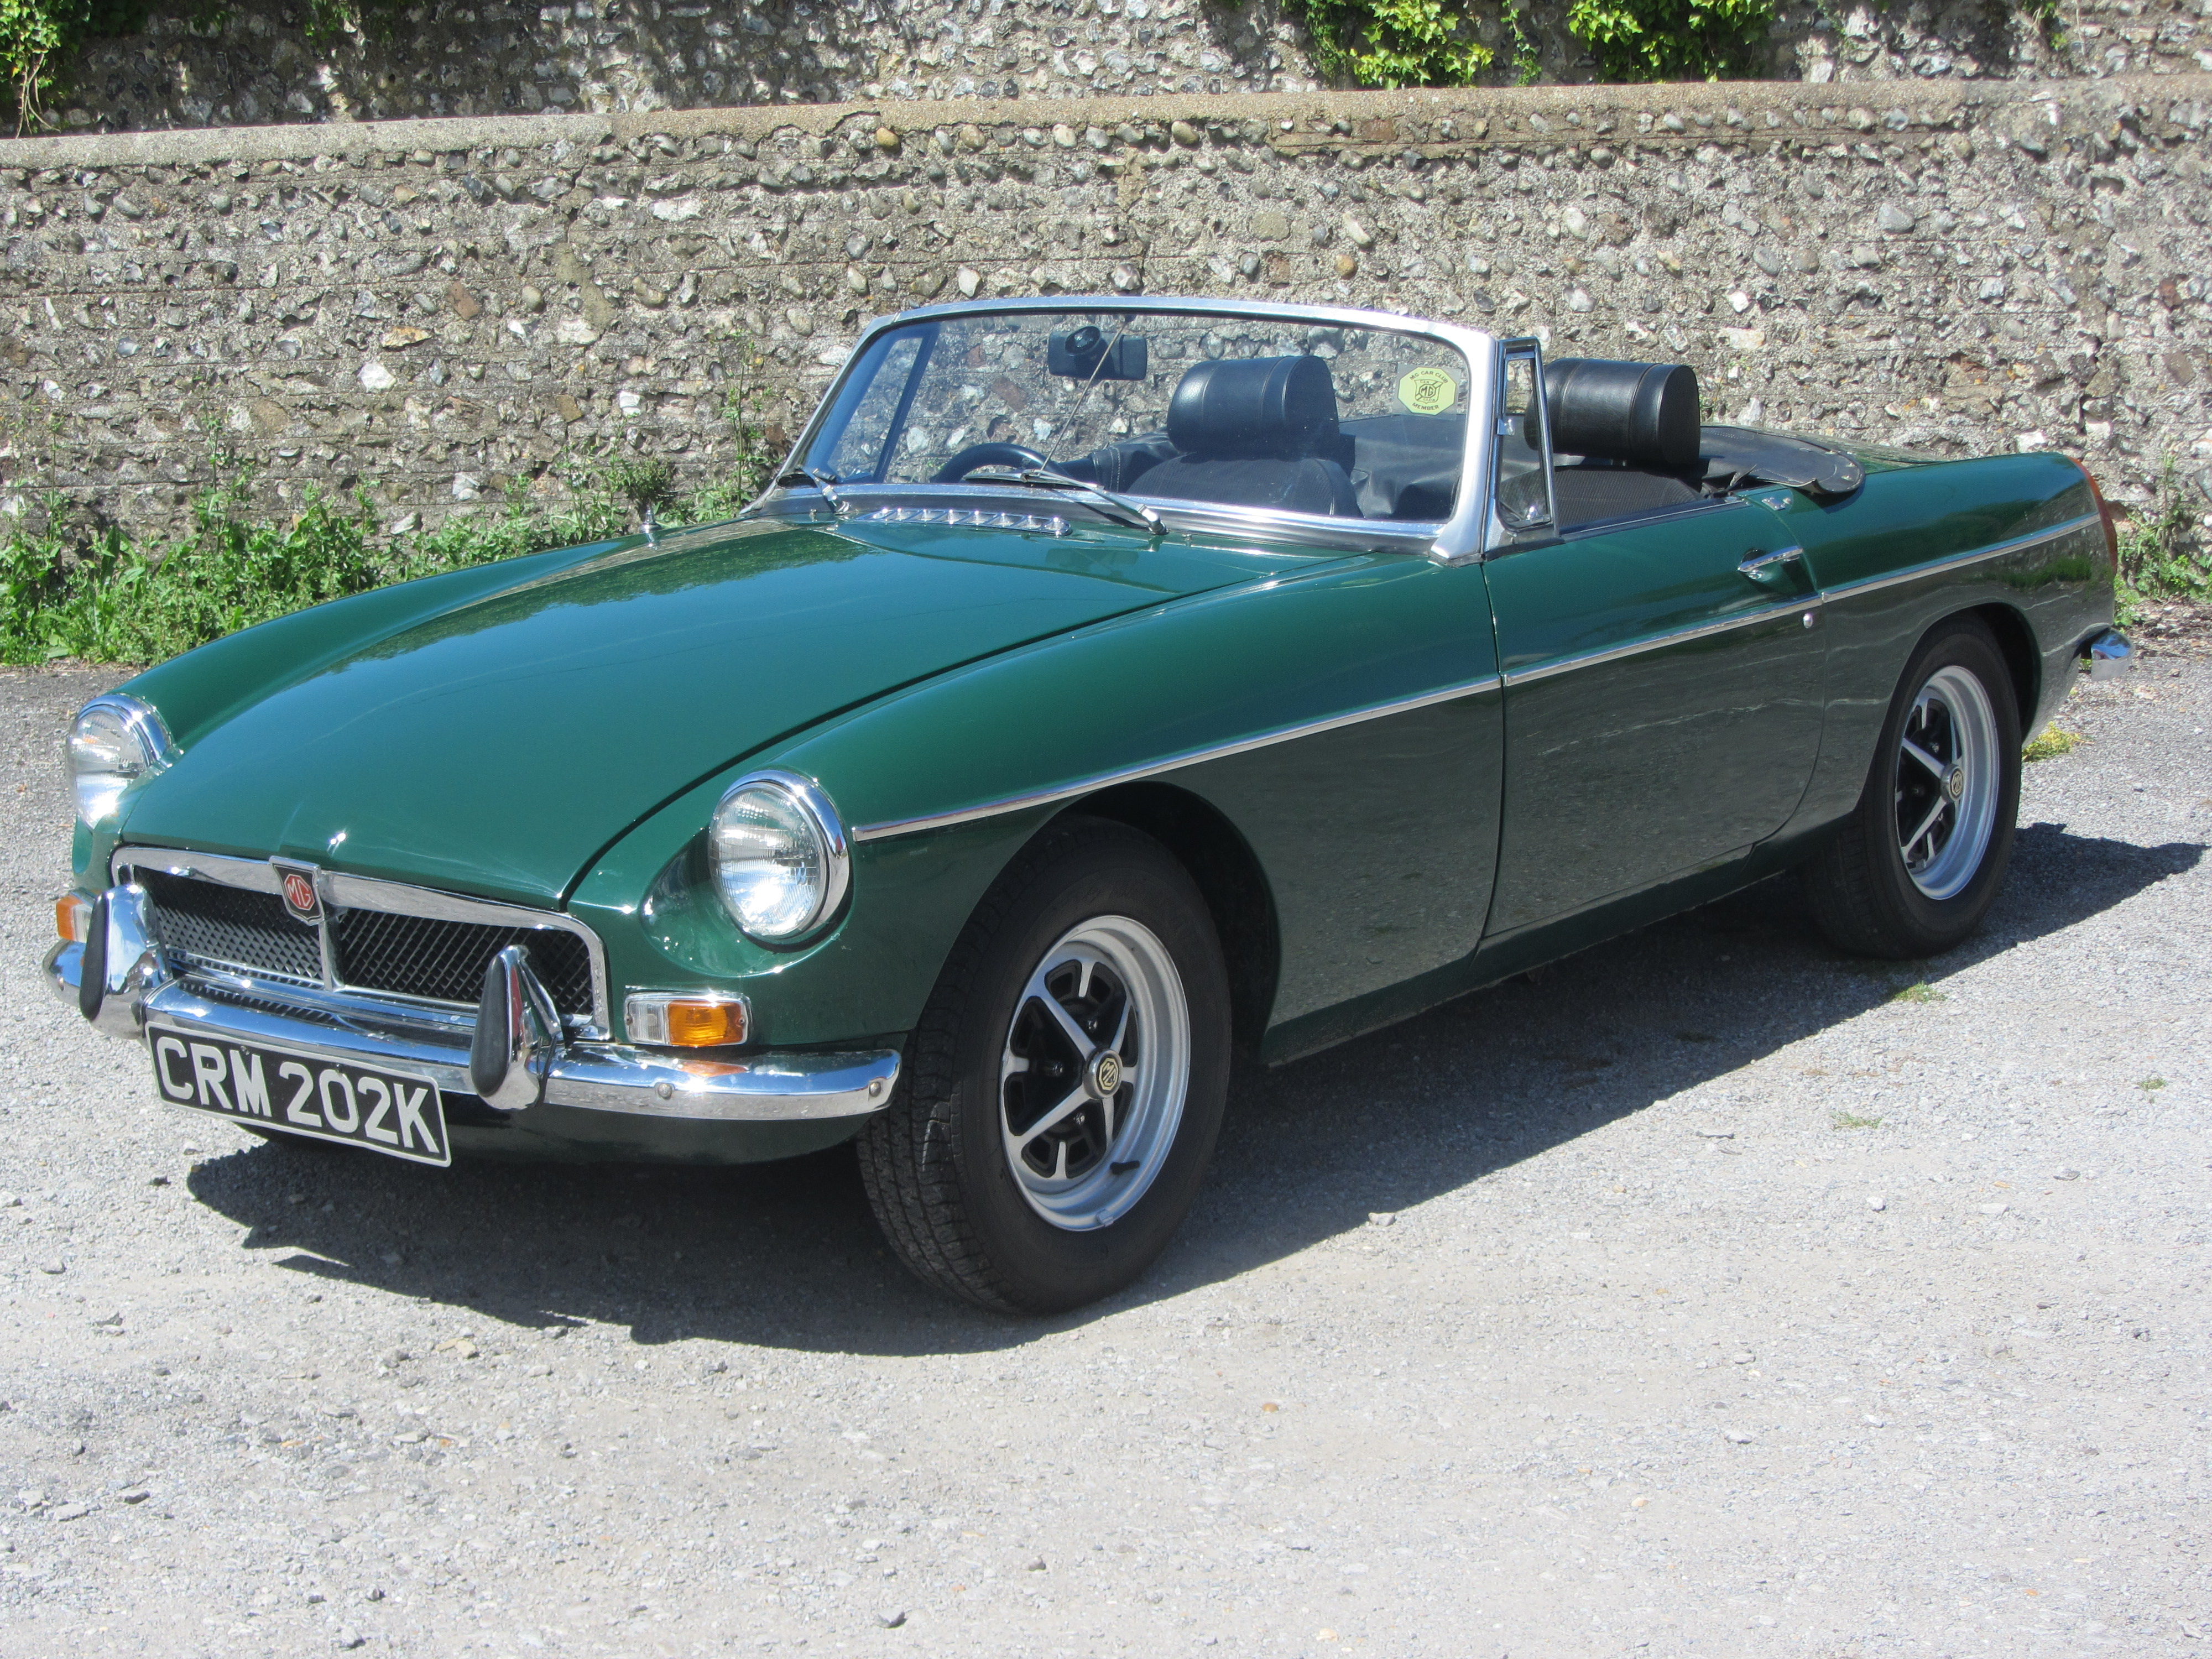 1971 MG B Roadster chrome bumper model tax exempt for sale